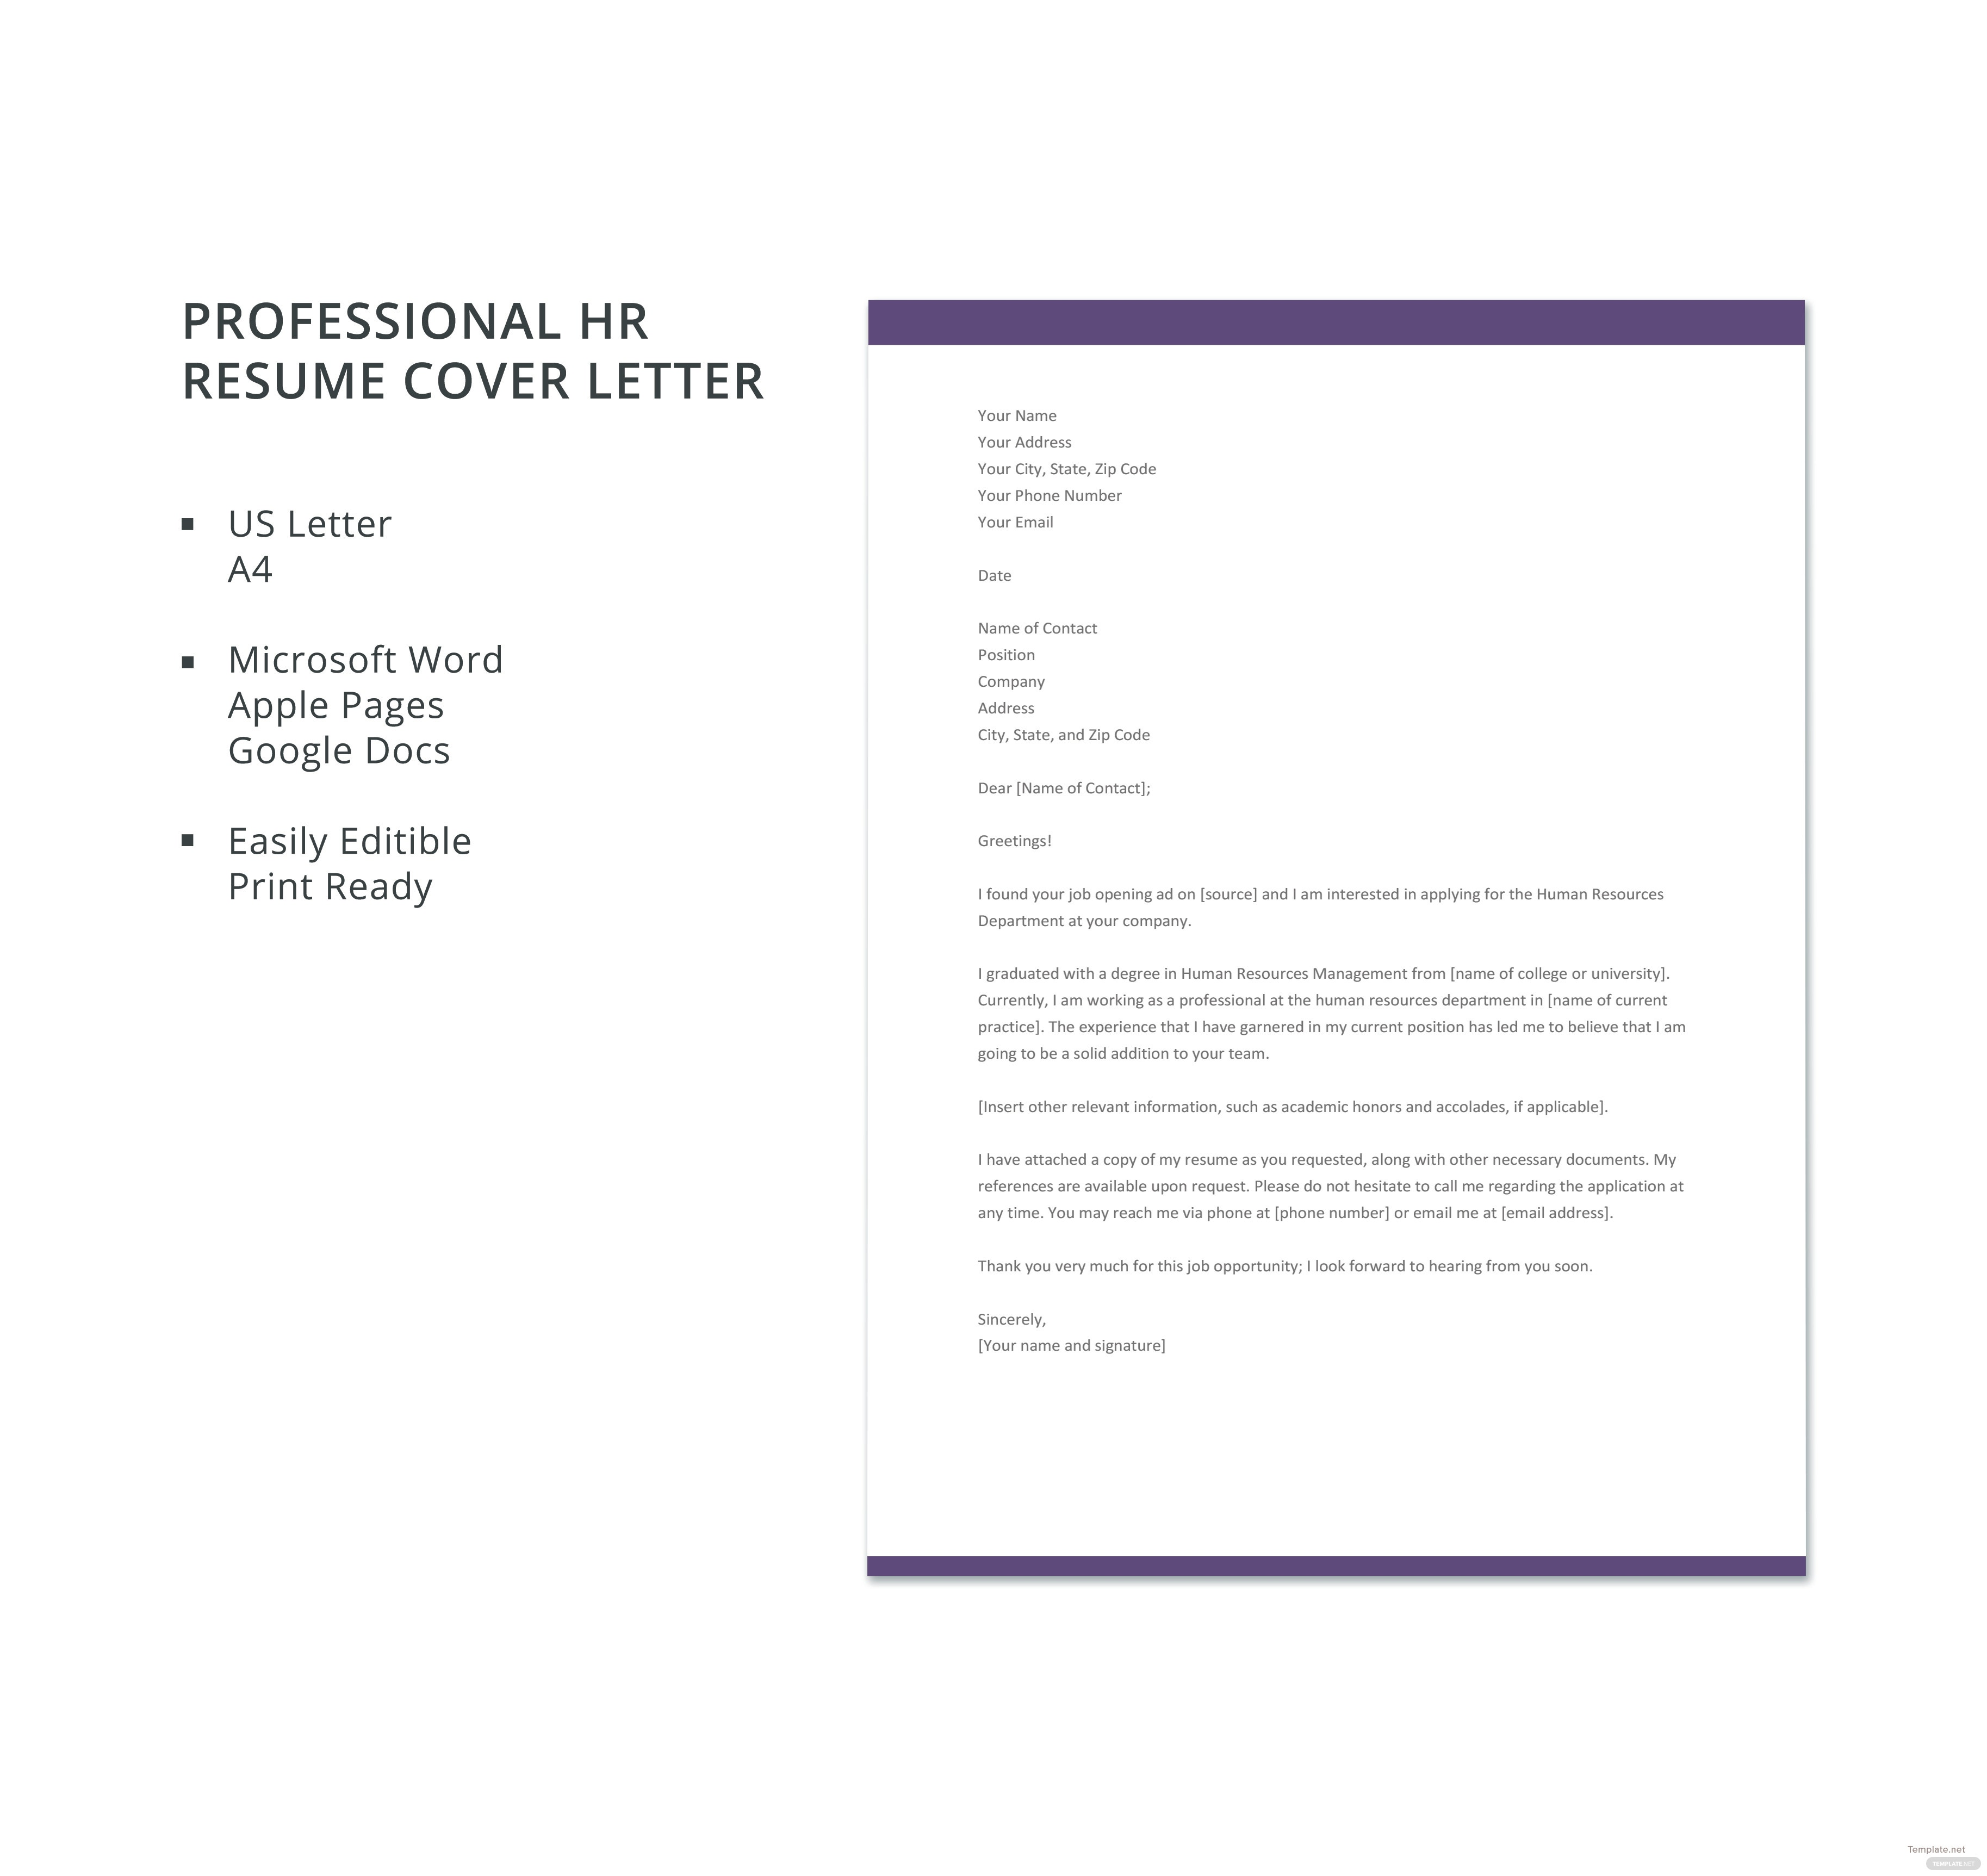 Free Receptionist Resume Cover Letter Template in Microsoft Word ...